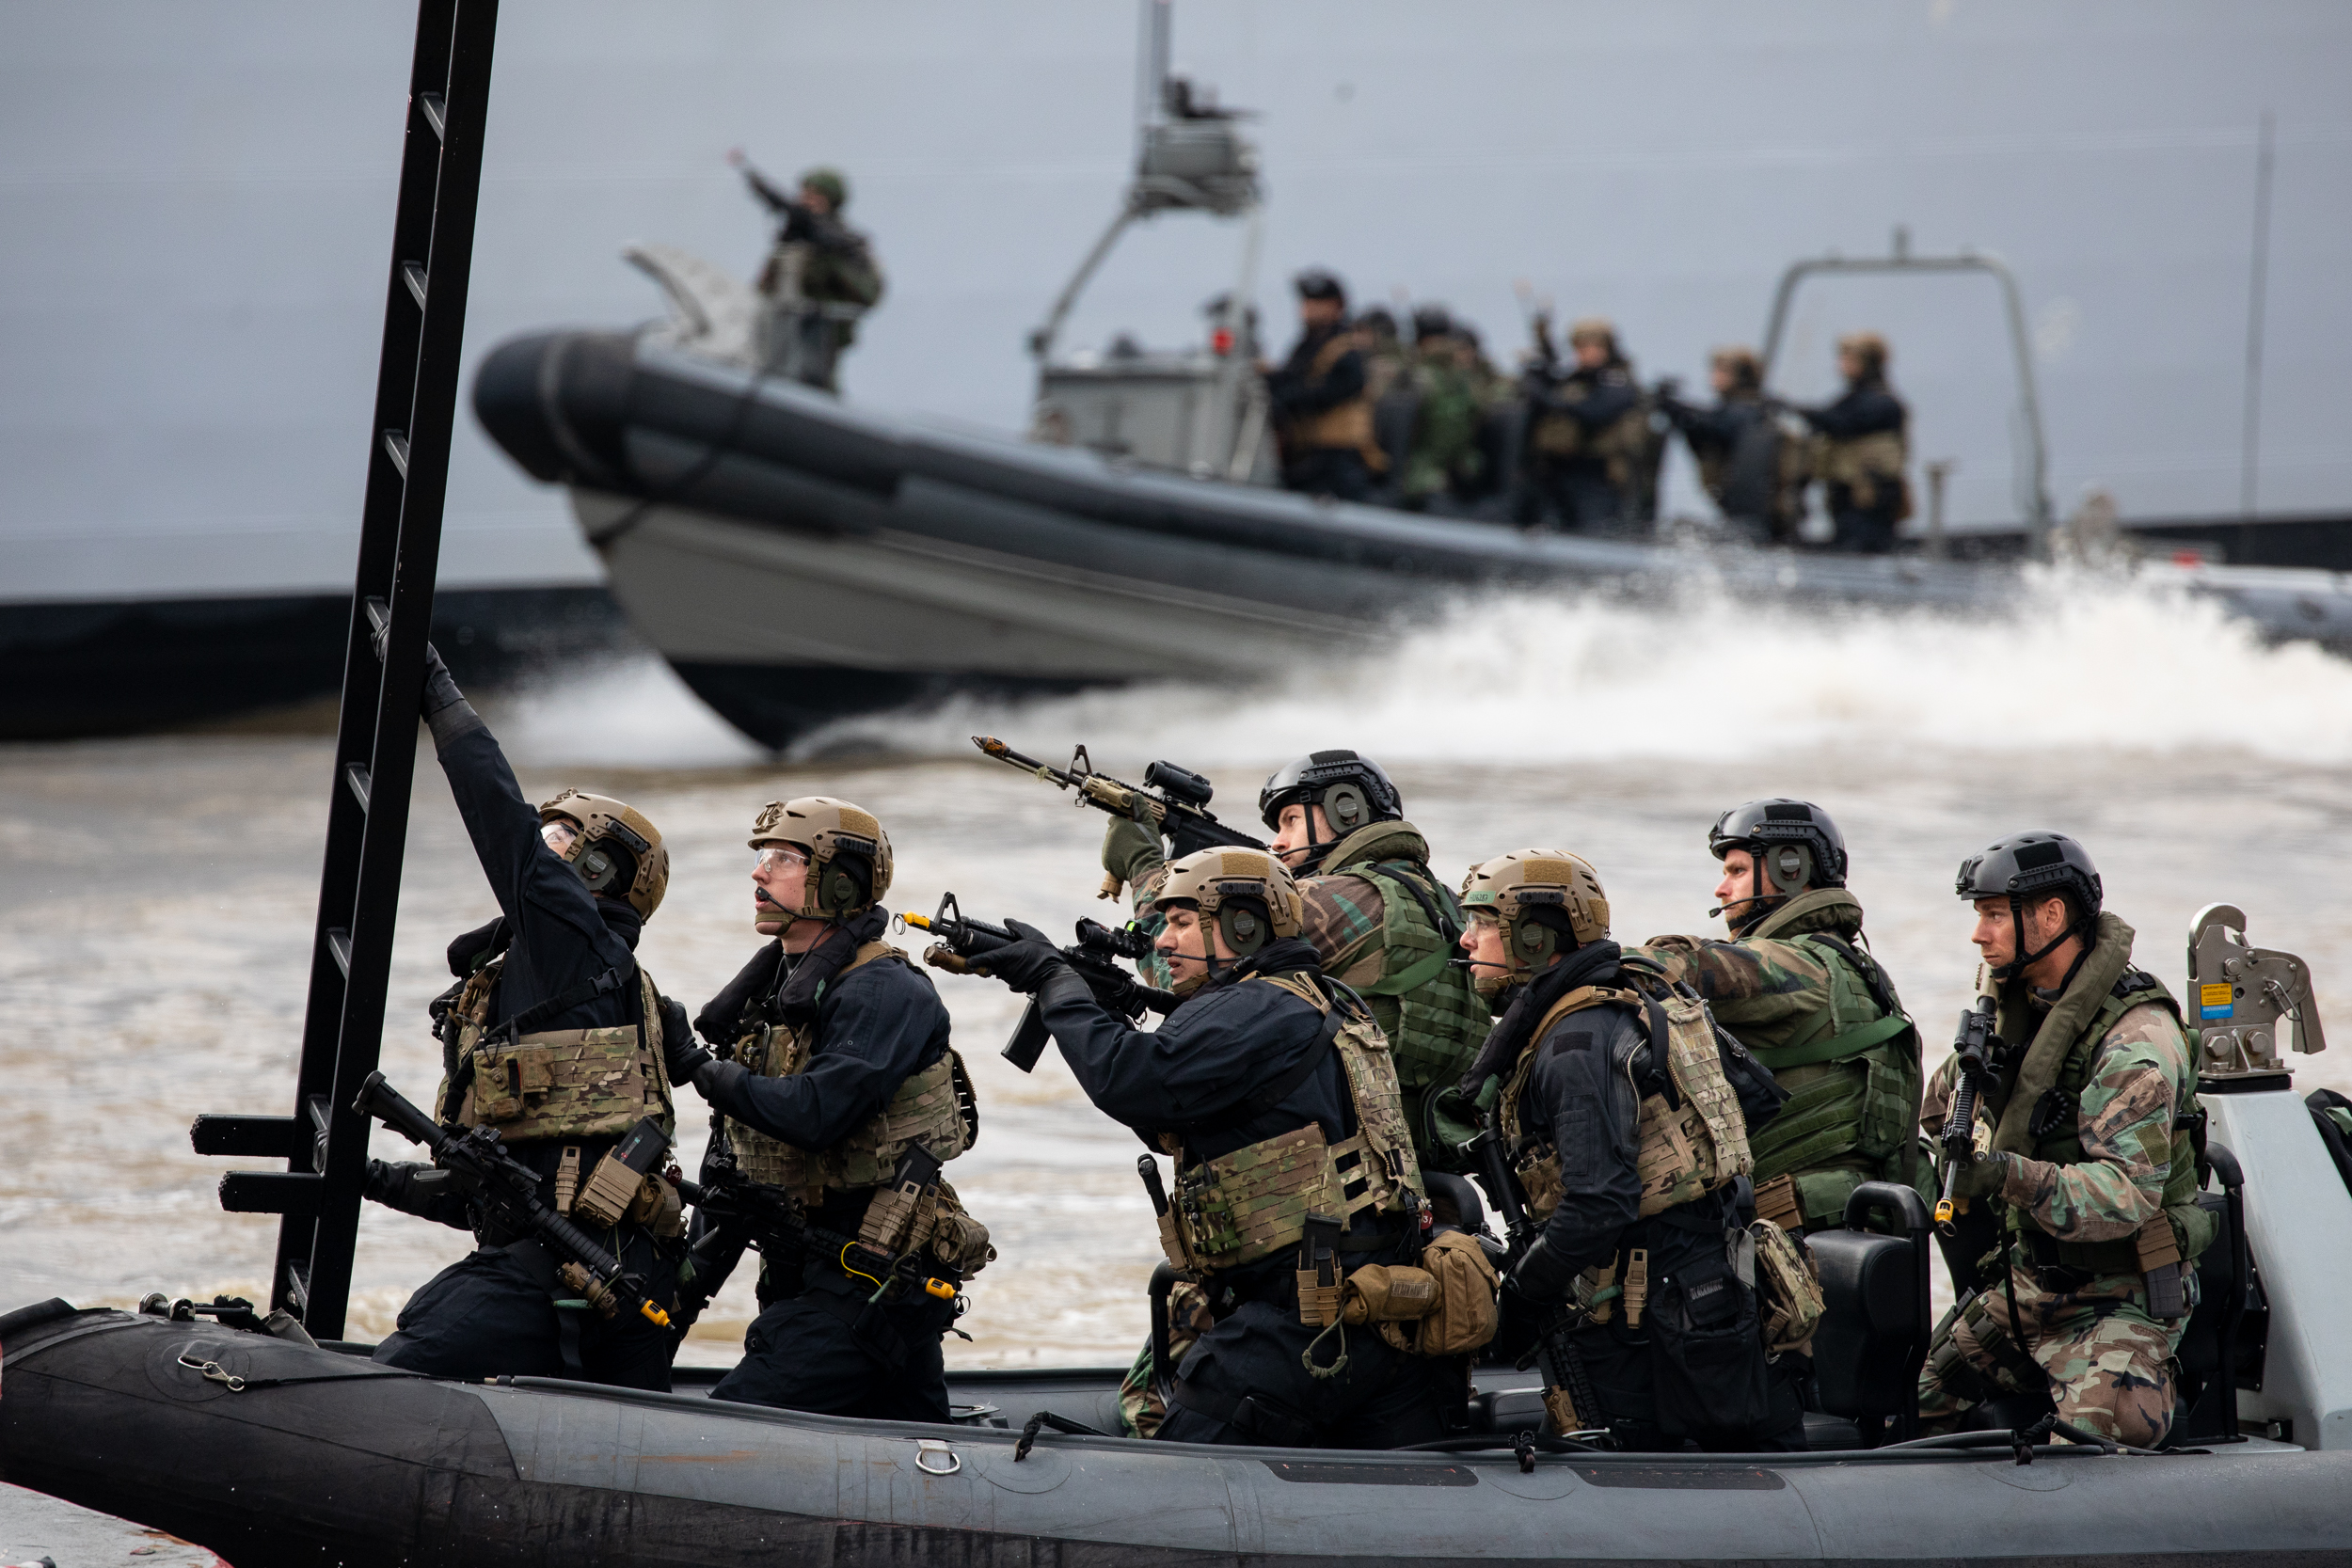 Royal Marine Commandos take part in a demonstration on the River Thames as part of the state visit by Dutch Royals King Willem-Alexander and Queen Maxima. October 2018 - London, UK.